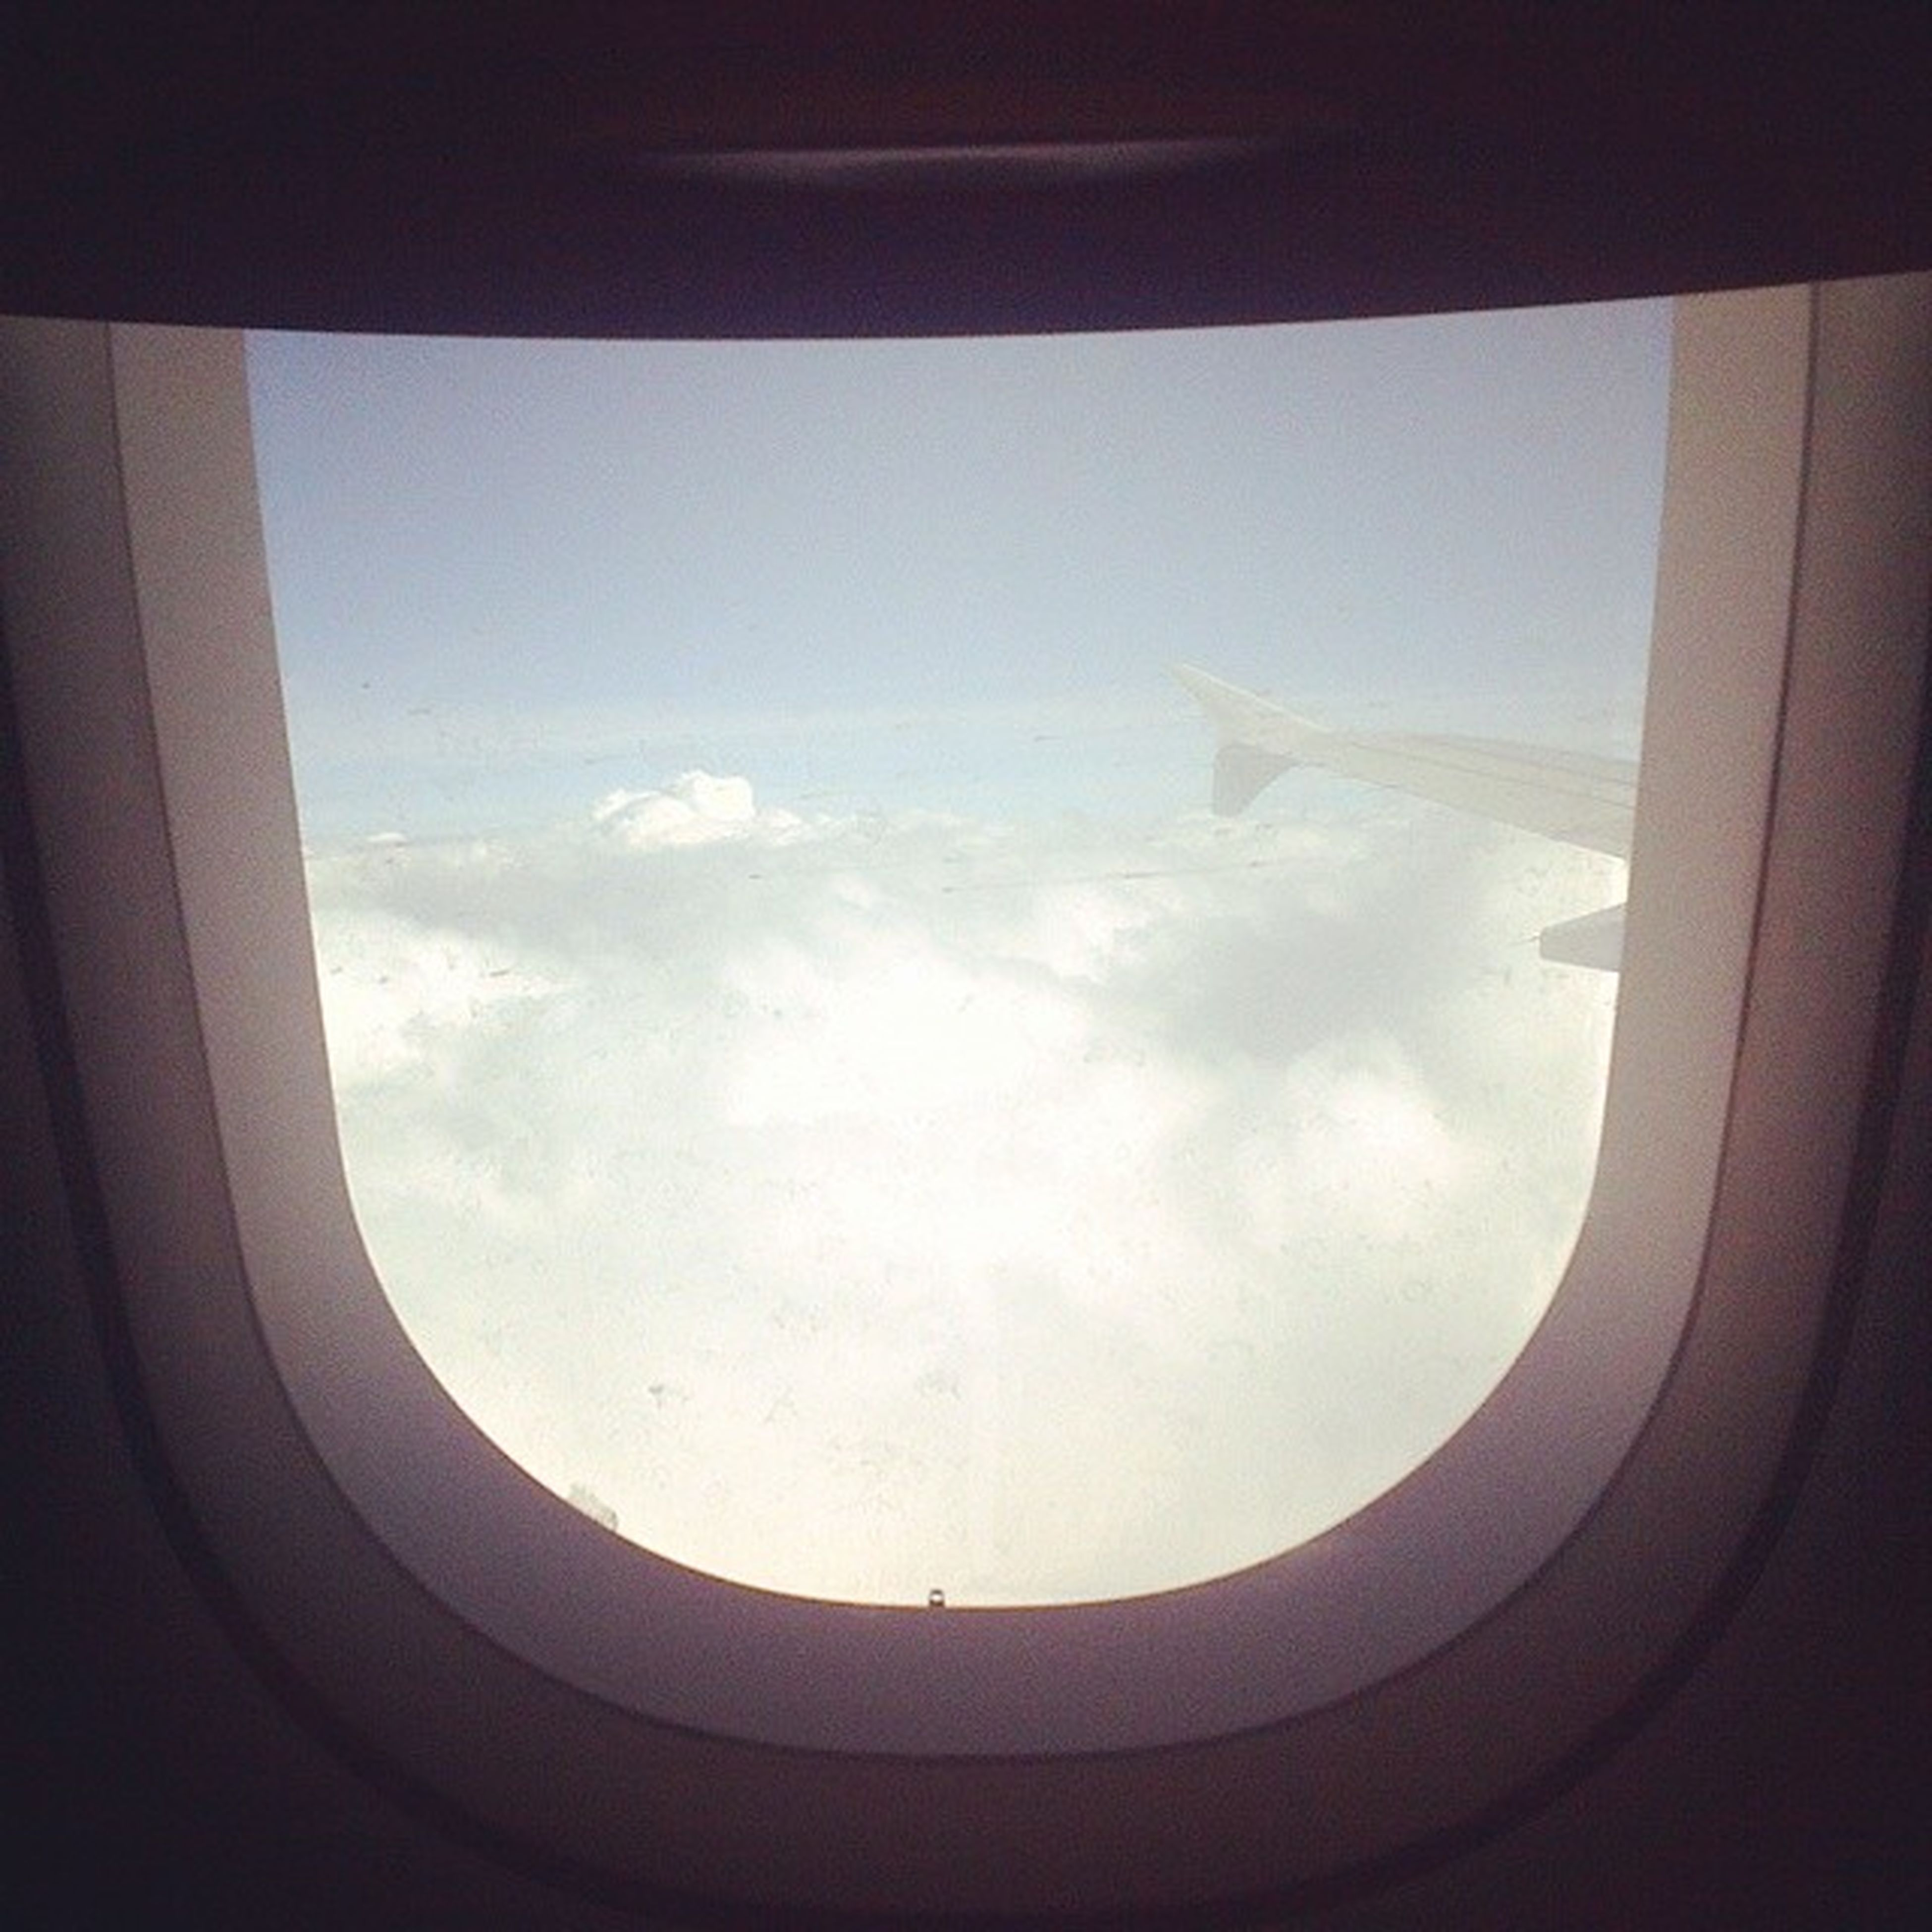 airplane, air vehicle, flying, transportation, aircraft wing, mode of transport, part of, window, aerial view, mid-air, public transportation, sky, cropped, vehicle interior, travel, journey, on the move, transparent, glass - material, cloud - sky